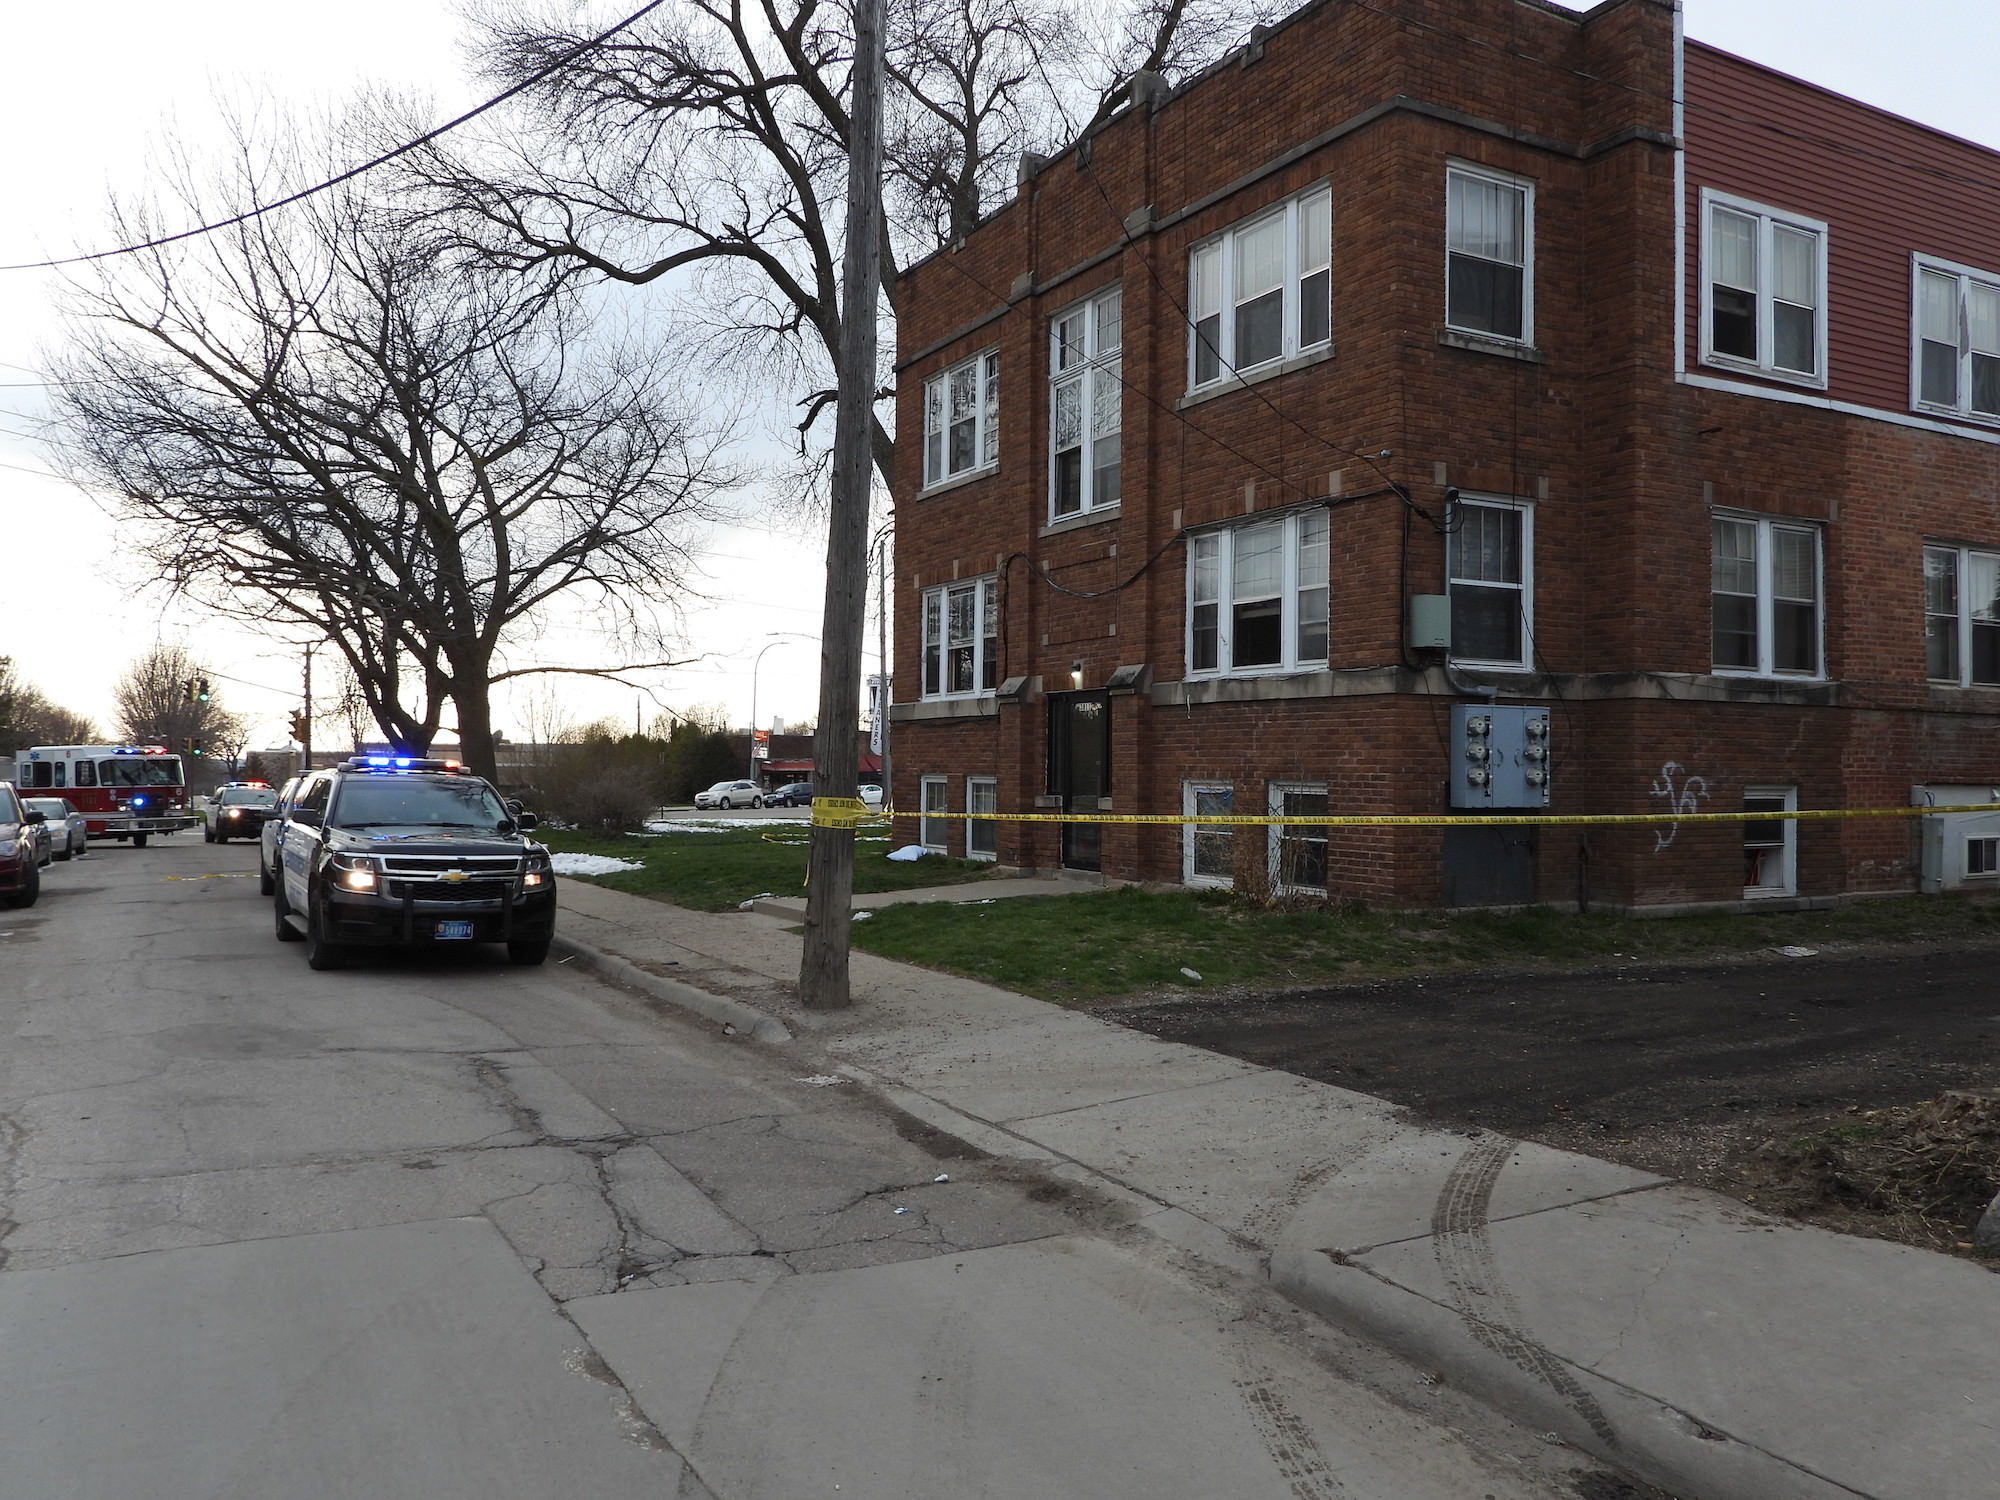 Man charged with murder after Tuesday evening stabbing in Morningside